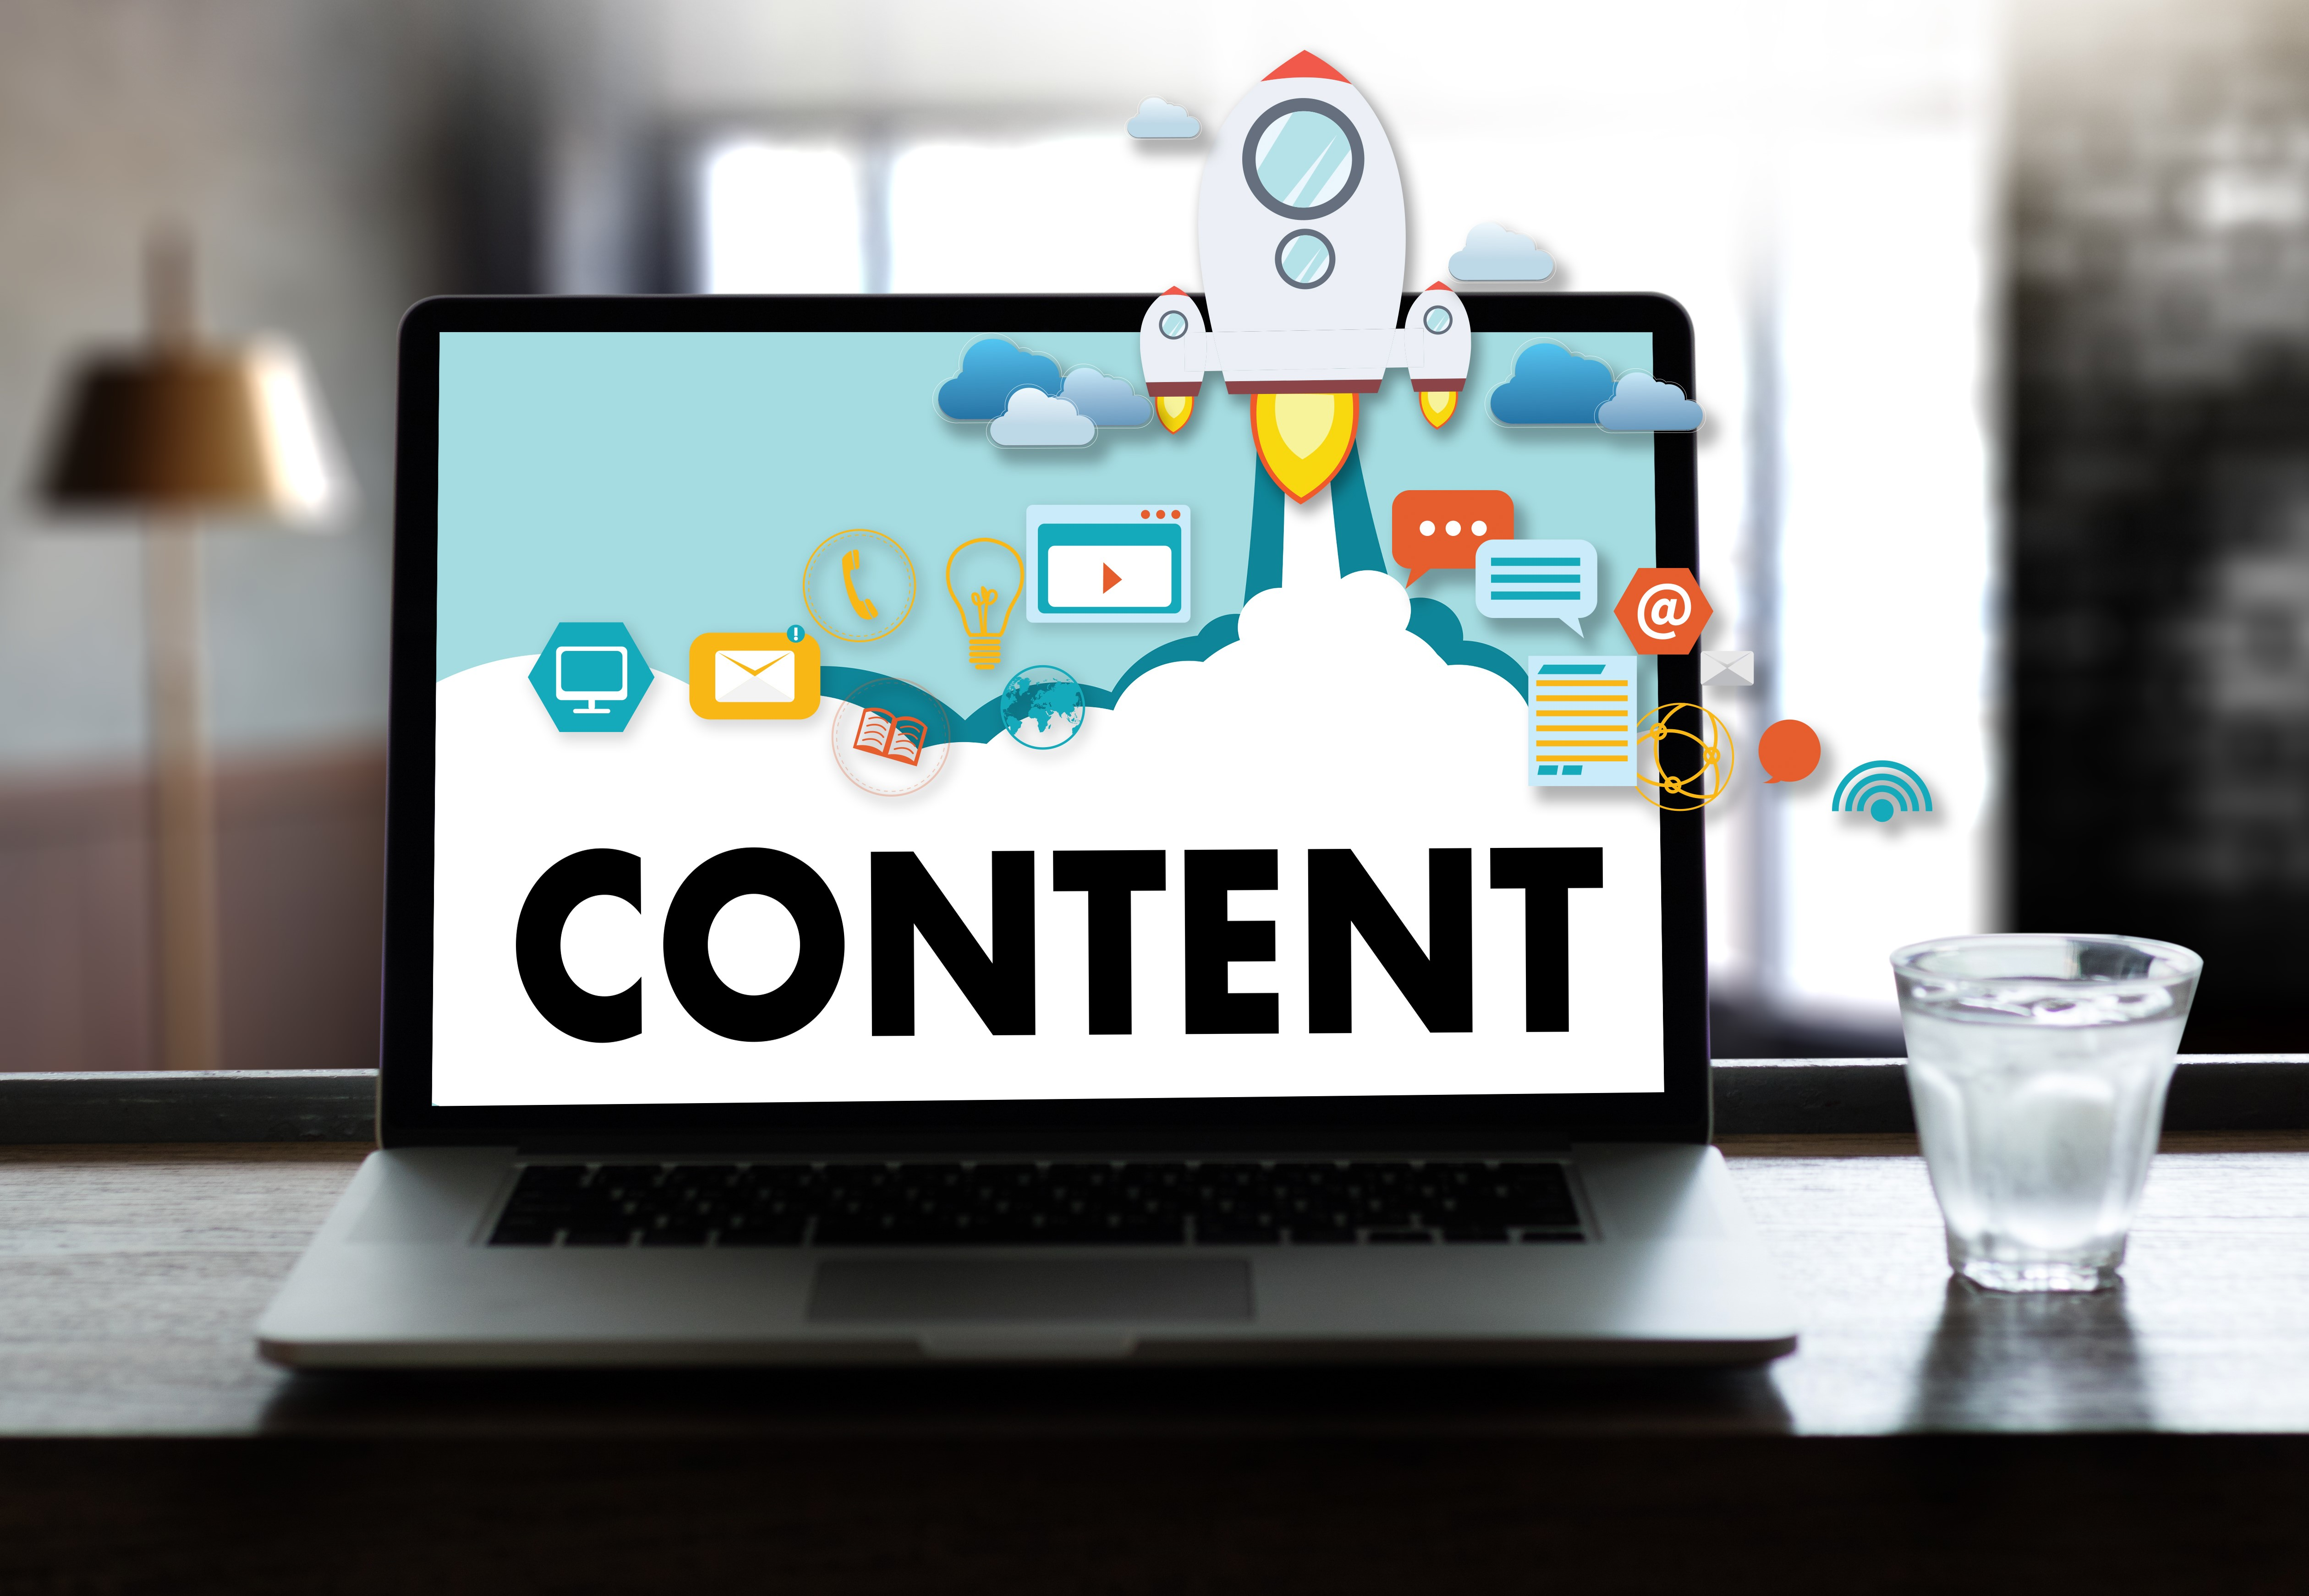 content can help your small business